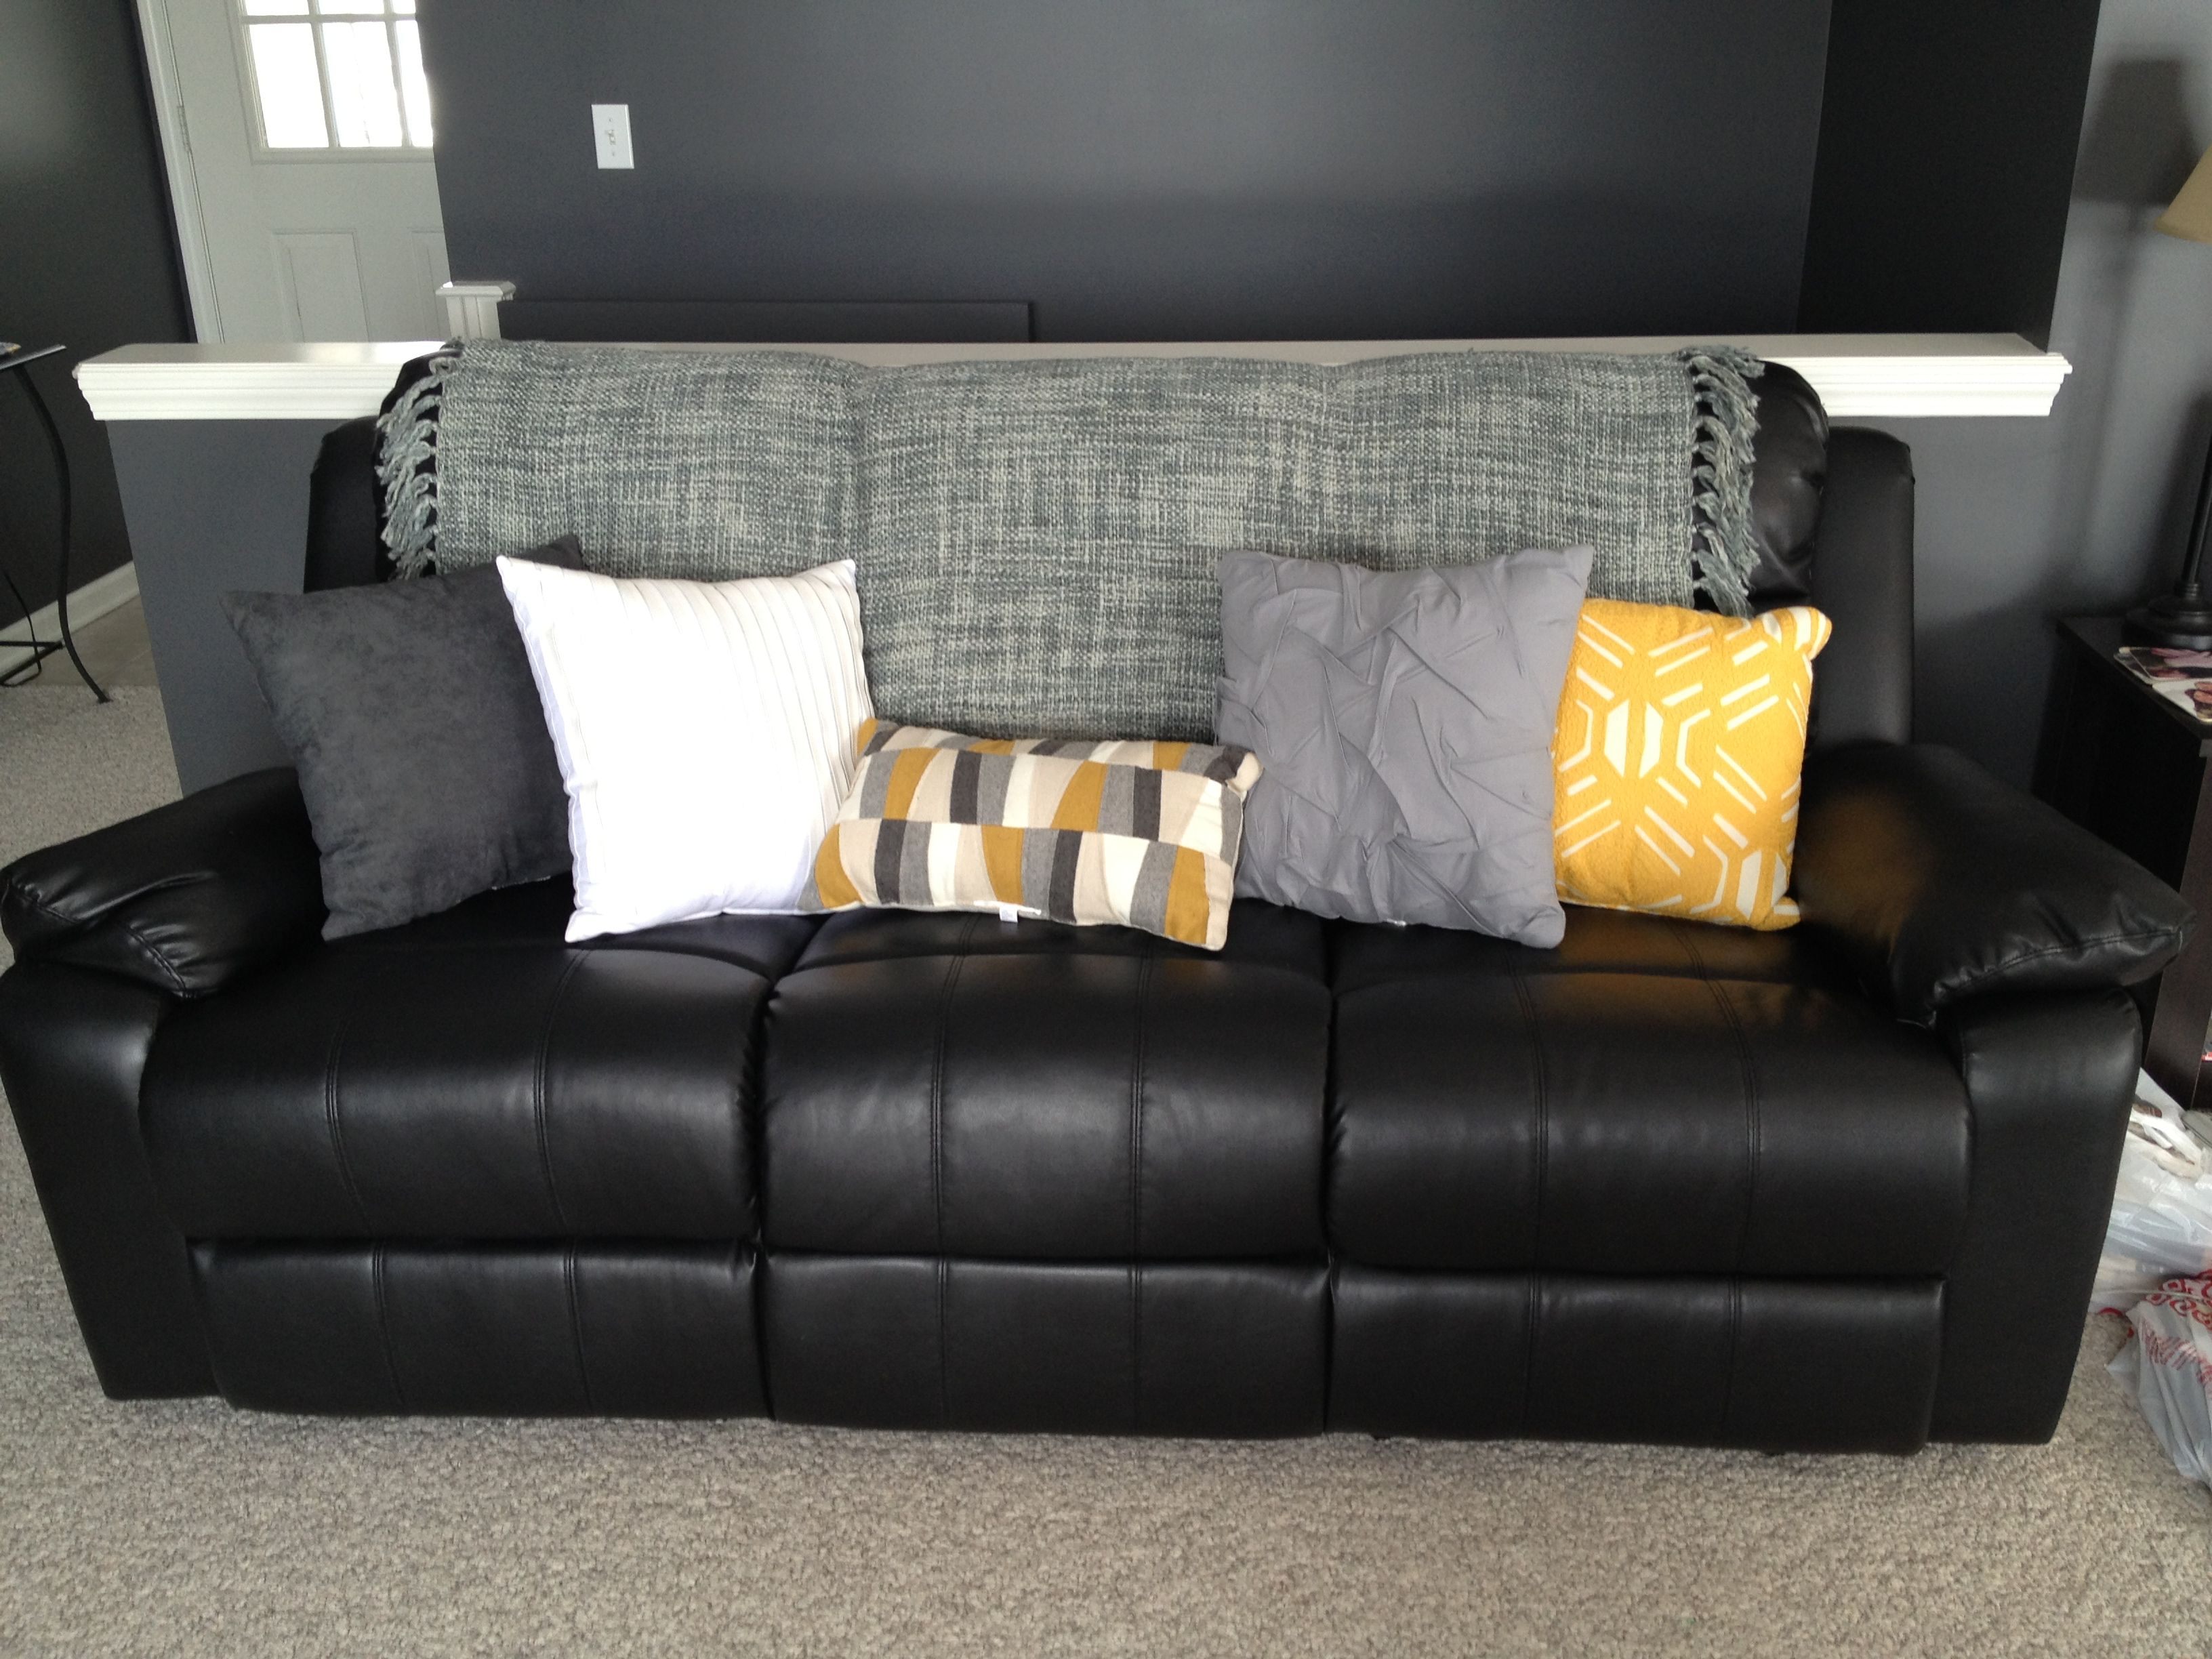 Pillow Ideas For Leather Sofa Lancaster Rh Lighten Up A Black Couch With Bright Pillows And